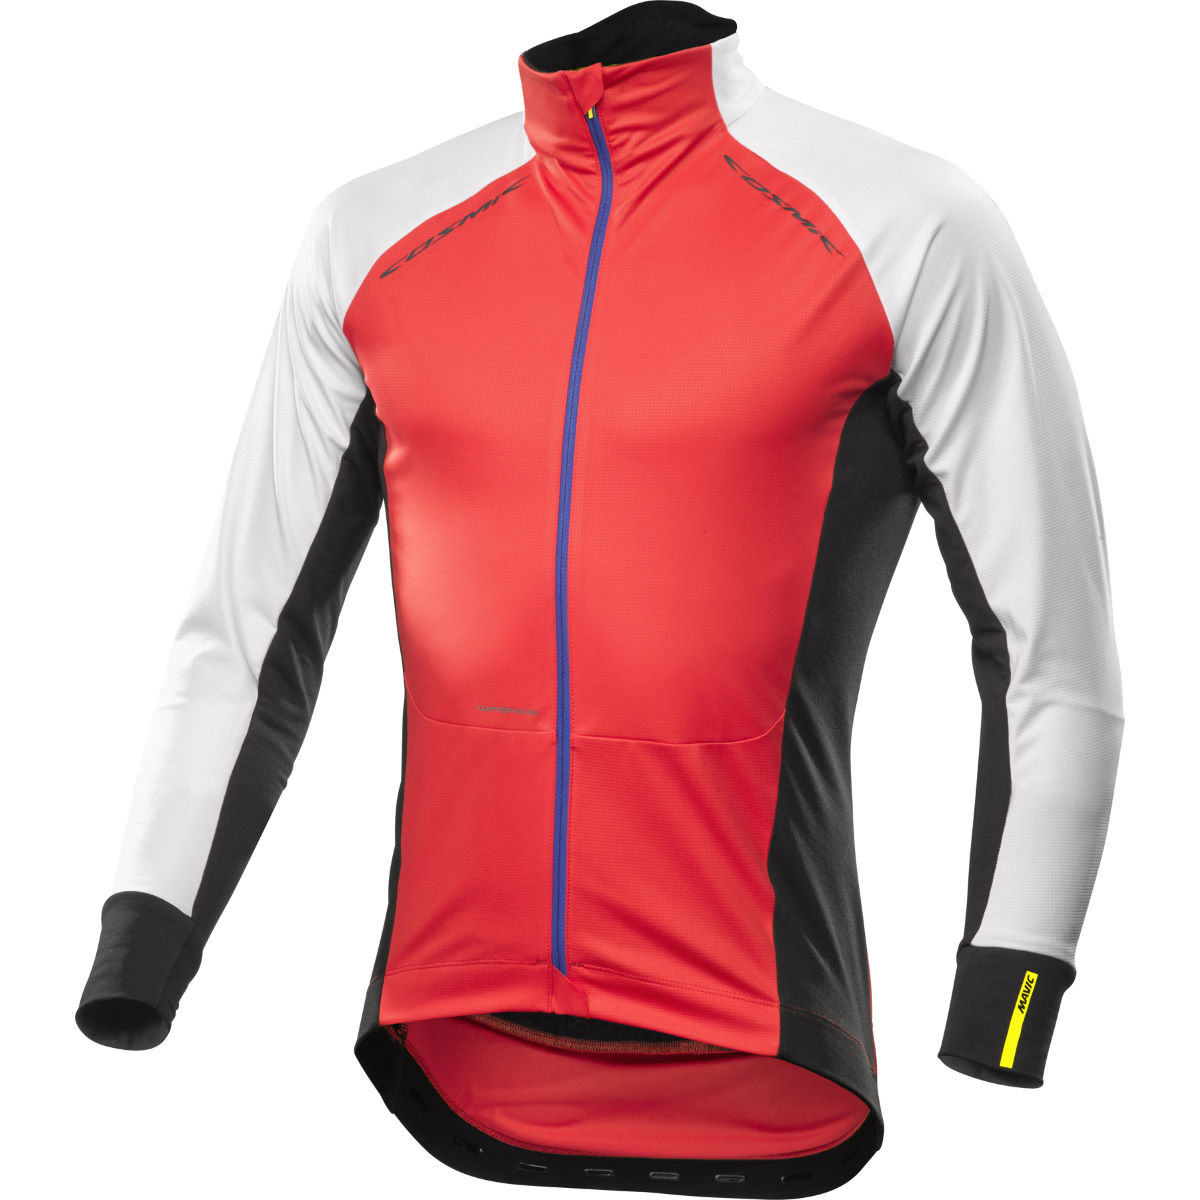 Maillot Mavic Cosmic Pro Wind (manches longues) - S Coupe-vents vélo